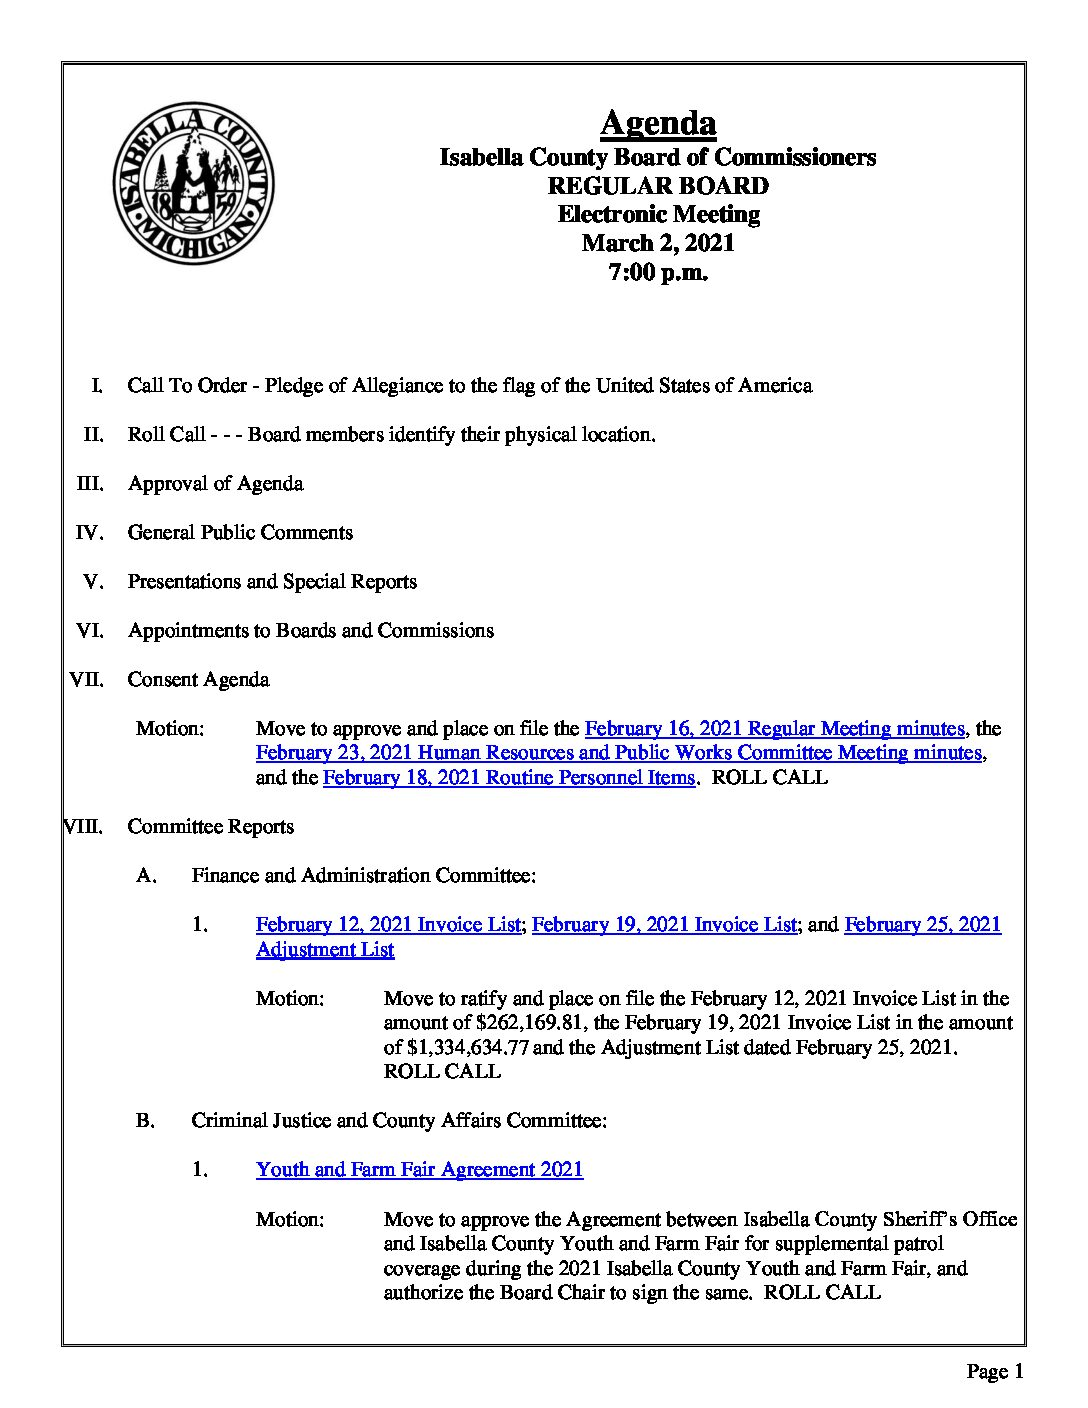 preview image of first page March 2, 2021 Agenda